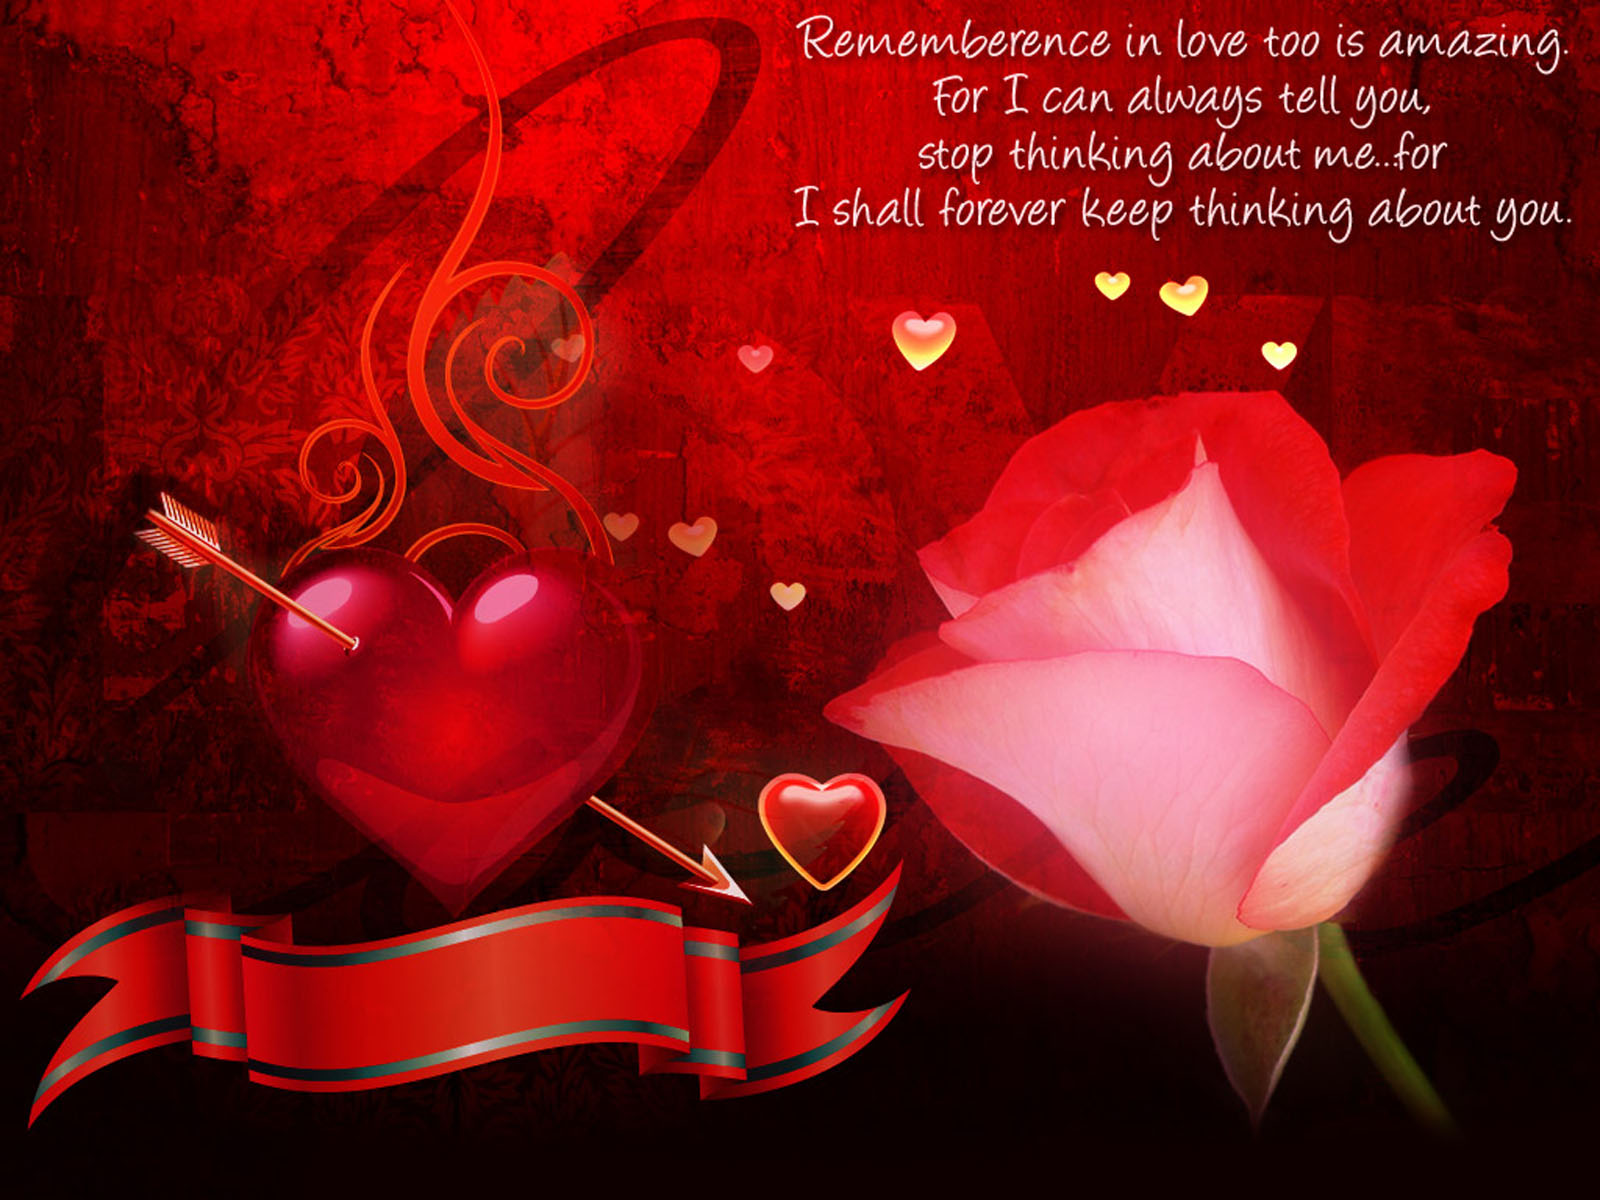 Love Quotes of Red Flower